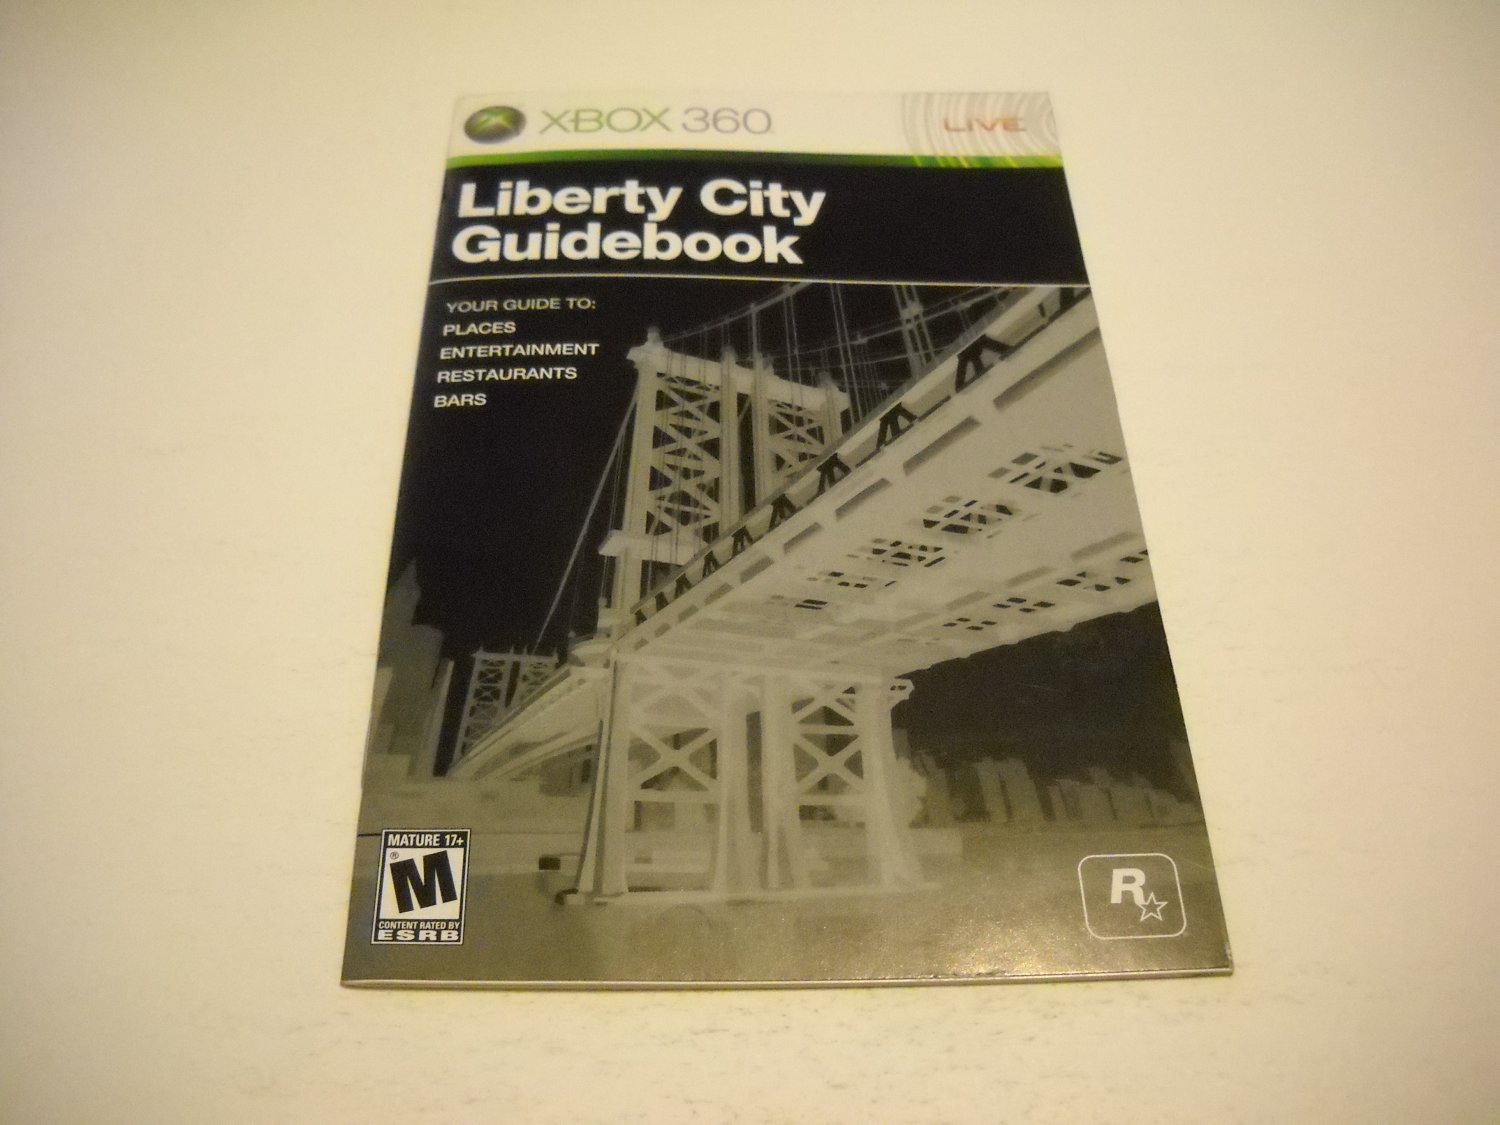 Manual ONLY ~  for Grand Theft Auto Liberty City Guidebook   - Xbox 360 Instruction Booklet